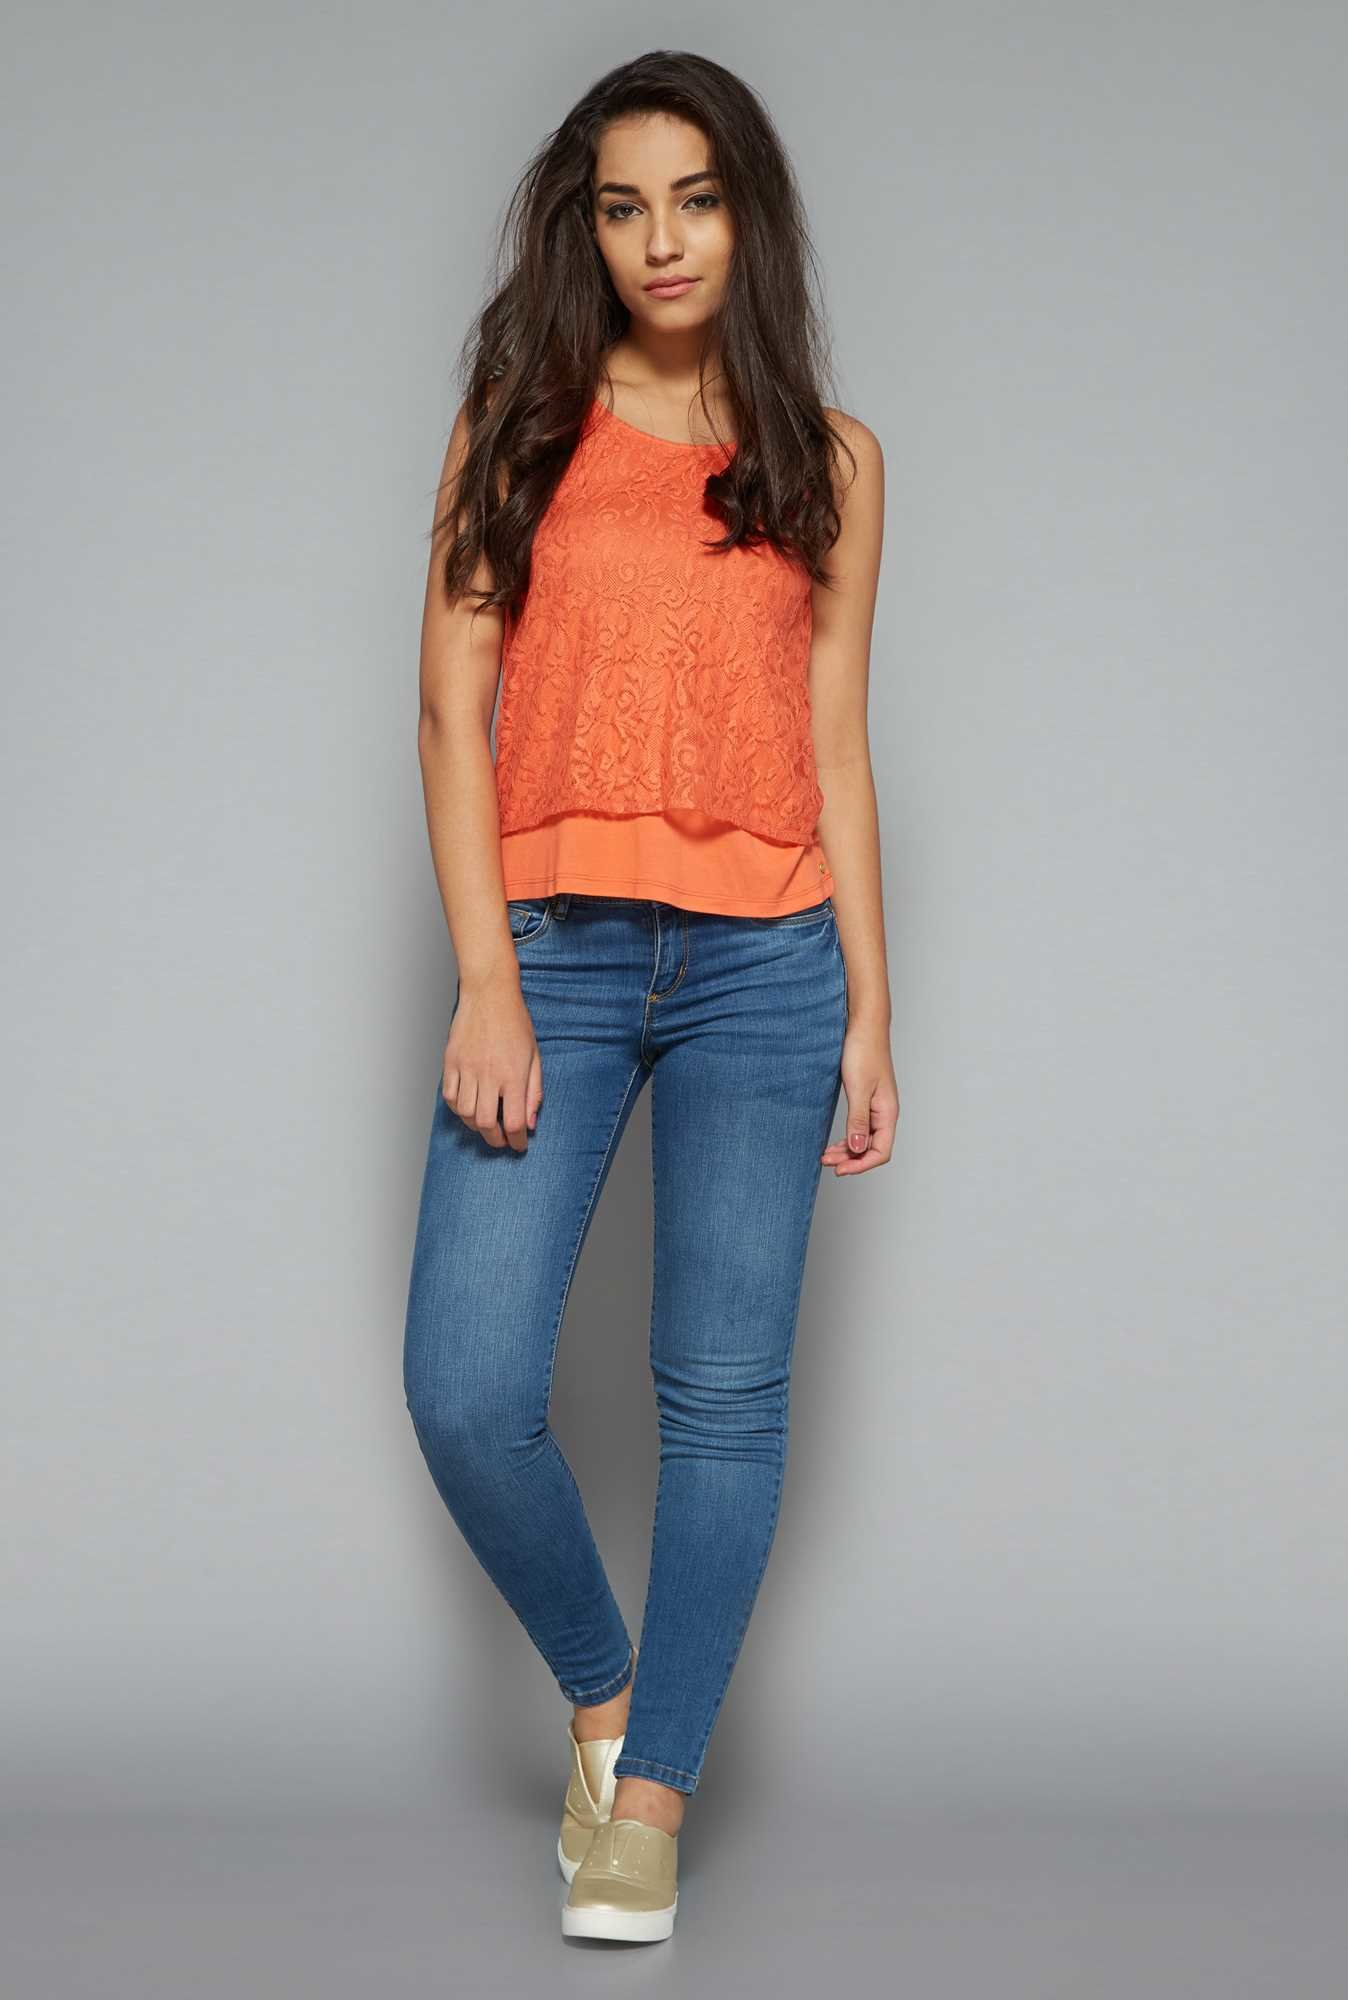 Nuon by Westside Orange Lace Top